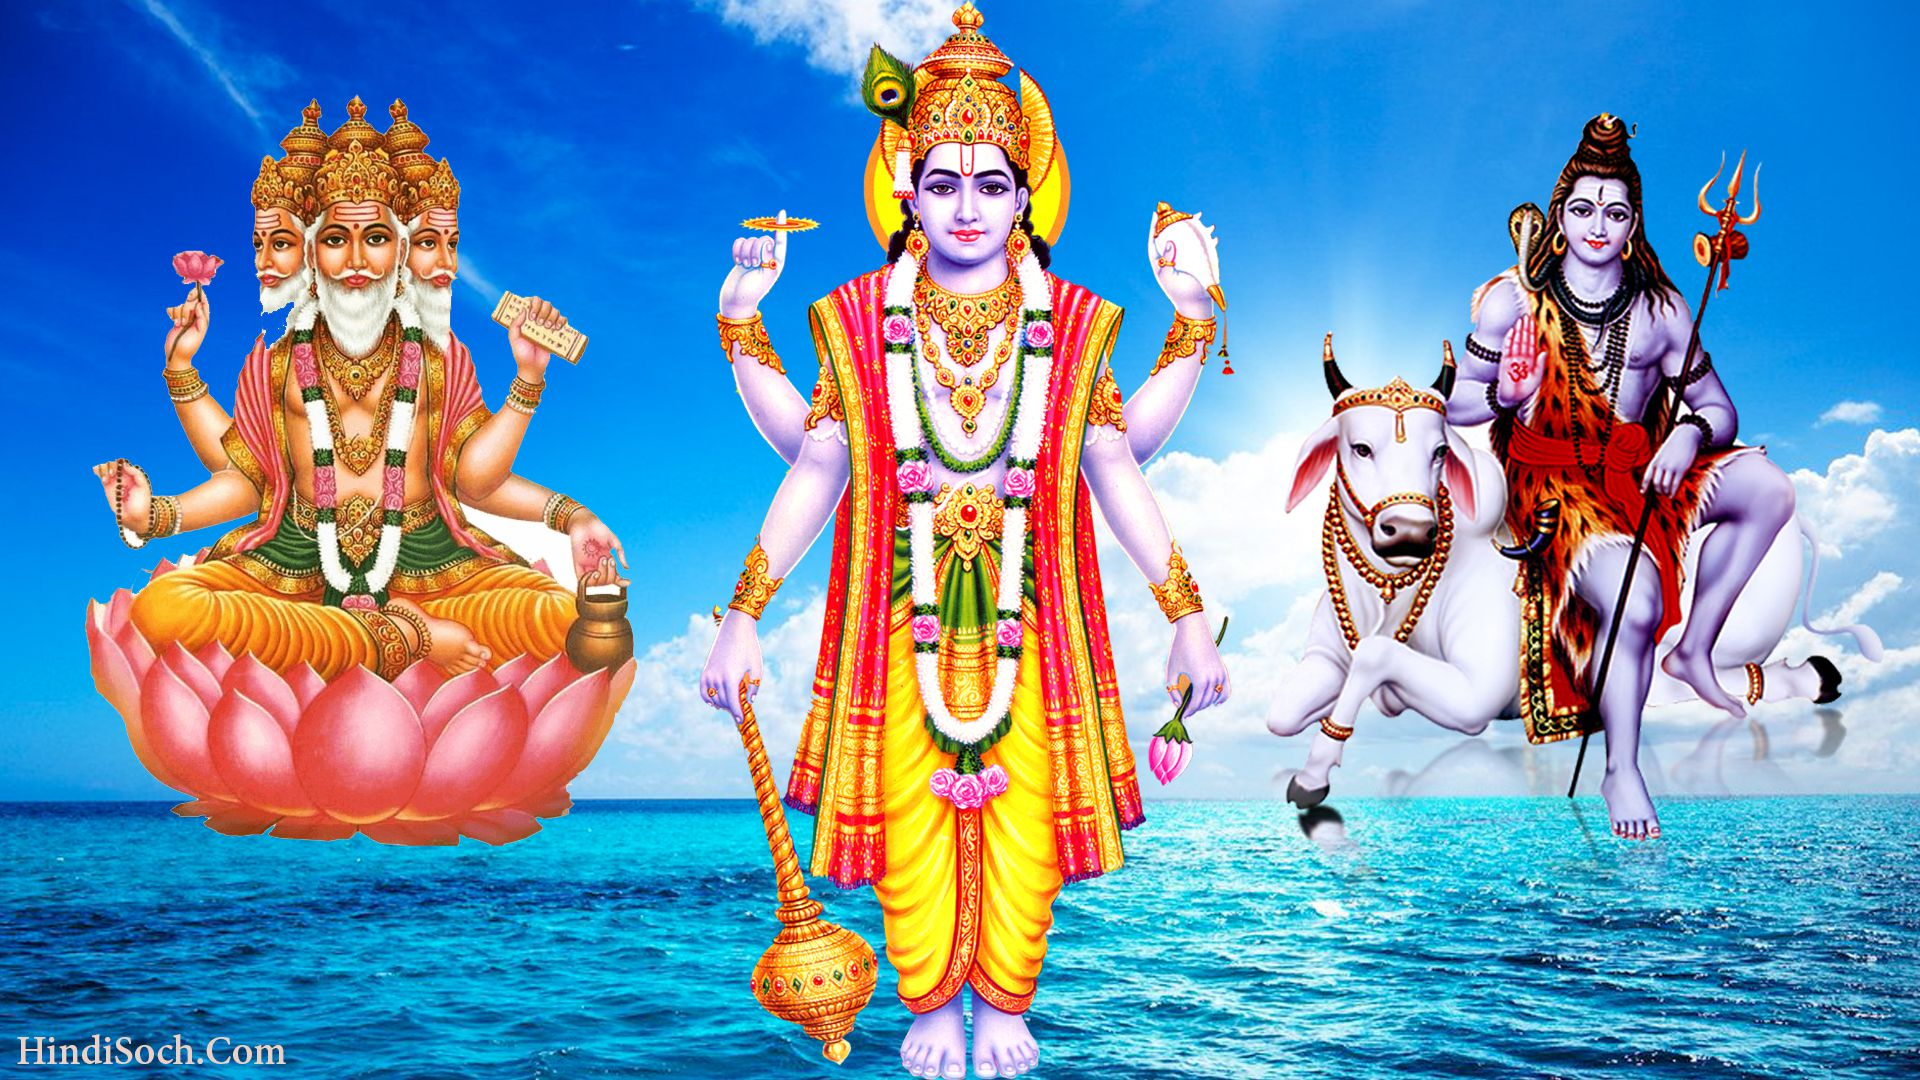 Best 3,487+ {HD God Images} Hindu God Wallpapers for Mobile Phones